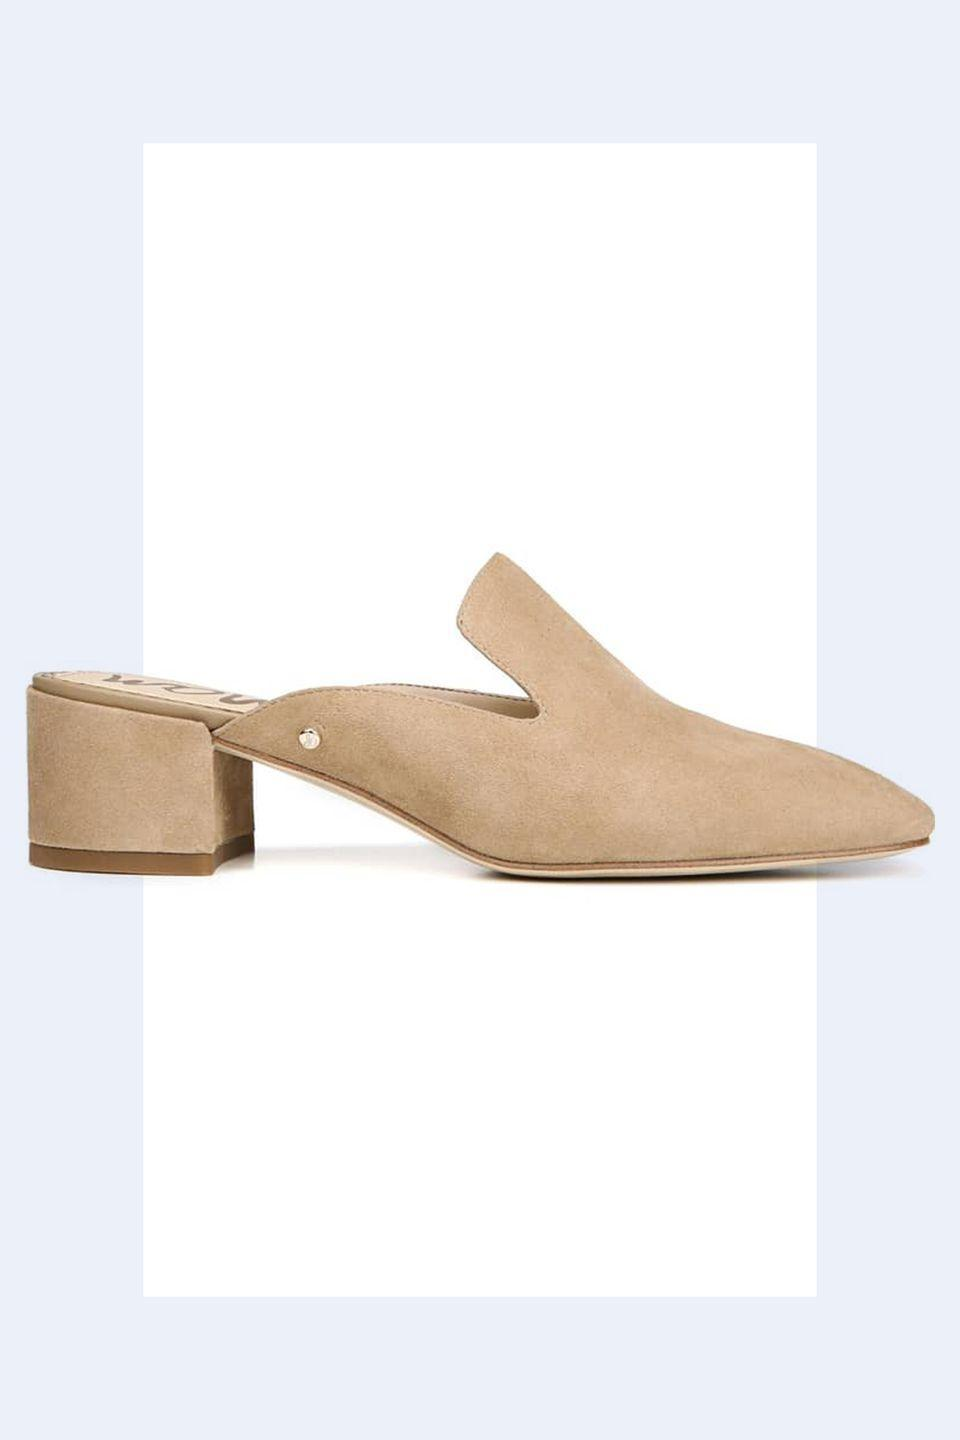 """<p><a rel=""""nofollow noopener"""" href=""""https://shop.nordstrom.com/s/sam-edelman-adair-loafer-mule-women/4931737?origin=keywordsearch-personalizedsort&breadcrumb=Home%2FAll%20Results&color=black%20leather"""" target=""""_blank"""" data-ylk=""""slk:SHOP NOW"""" class=""""link rapid-noclick-resp"""">SHOP NOW</a> <em>Sam Edelman Loafers, $71.98</em></p><p>""""Loafers are the perfect shoe to finish your look. They're so <strong>multi-purpose</strong> because you can wear them to run errands in then to meet friends for dinner."""" -<em><a rel=""""nofollow noopener"""" href=""""http://theonly.agency/negar-ali-kline"""" target=""""_blank"""" data-ylk=""""slk:Negar Ali Kline"""" class=""""link rapid-noclick-resp"""">Negar Ali Kline</a></em></p>"""